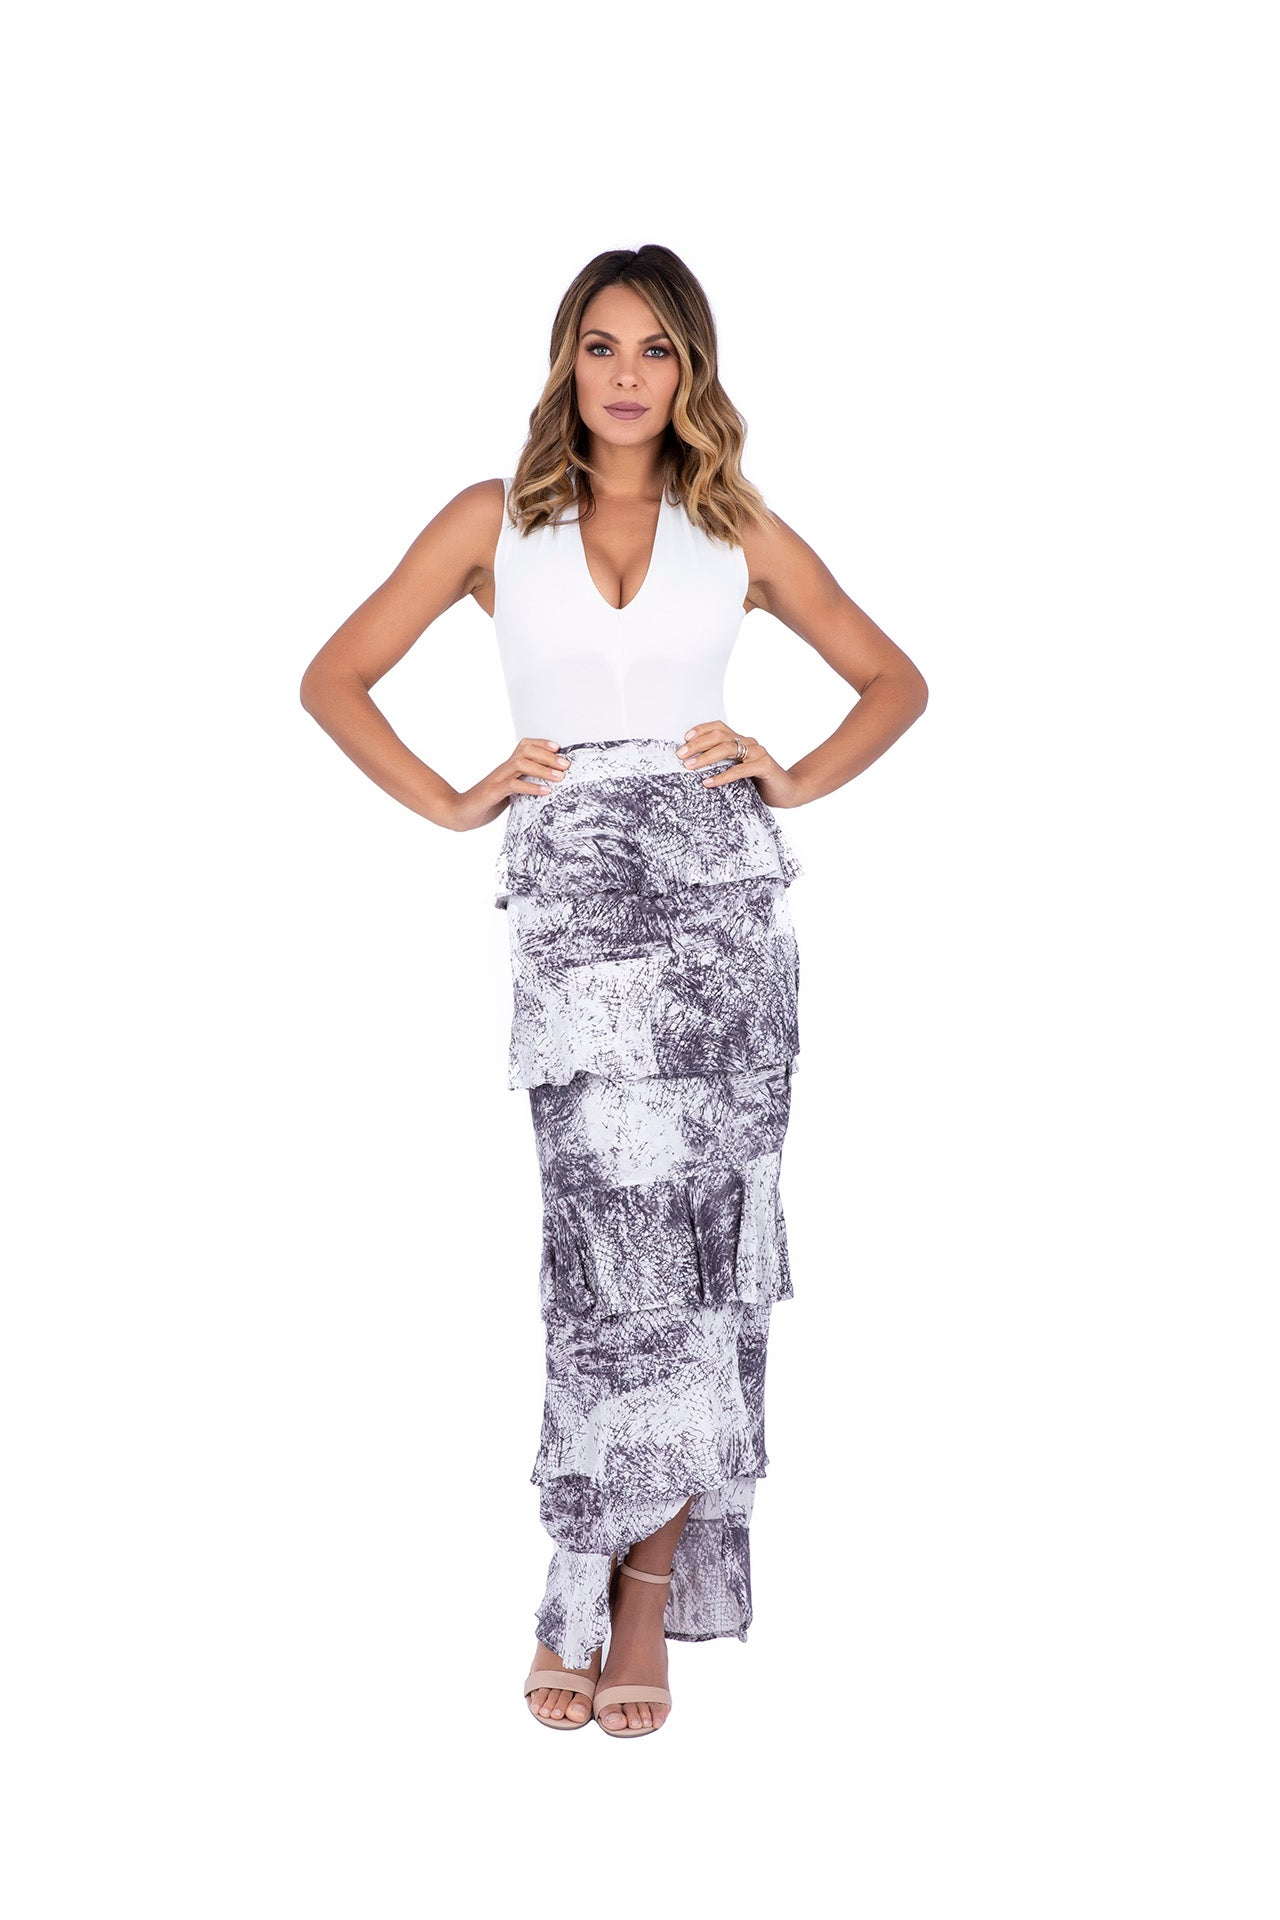 Mossa Ruffle Wrap Maxi Skirt - Pencil Sketch Print Skirts - artTECA